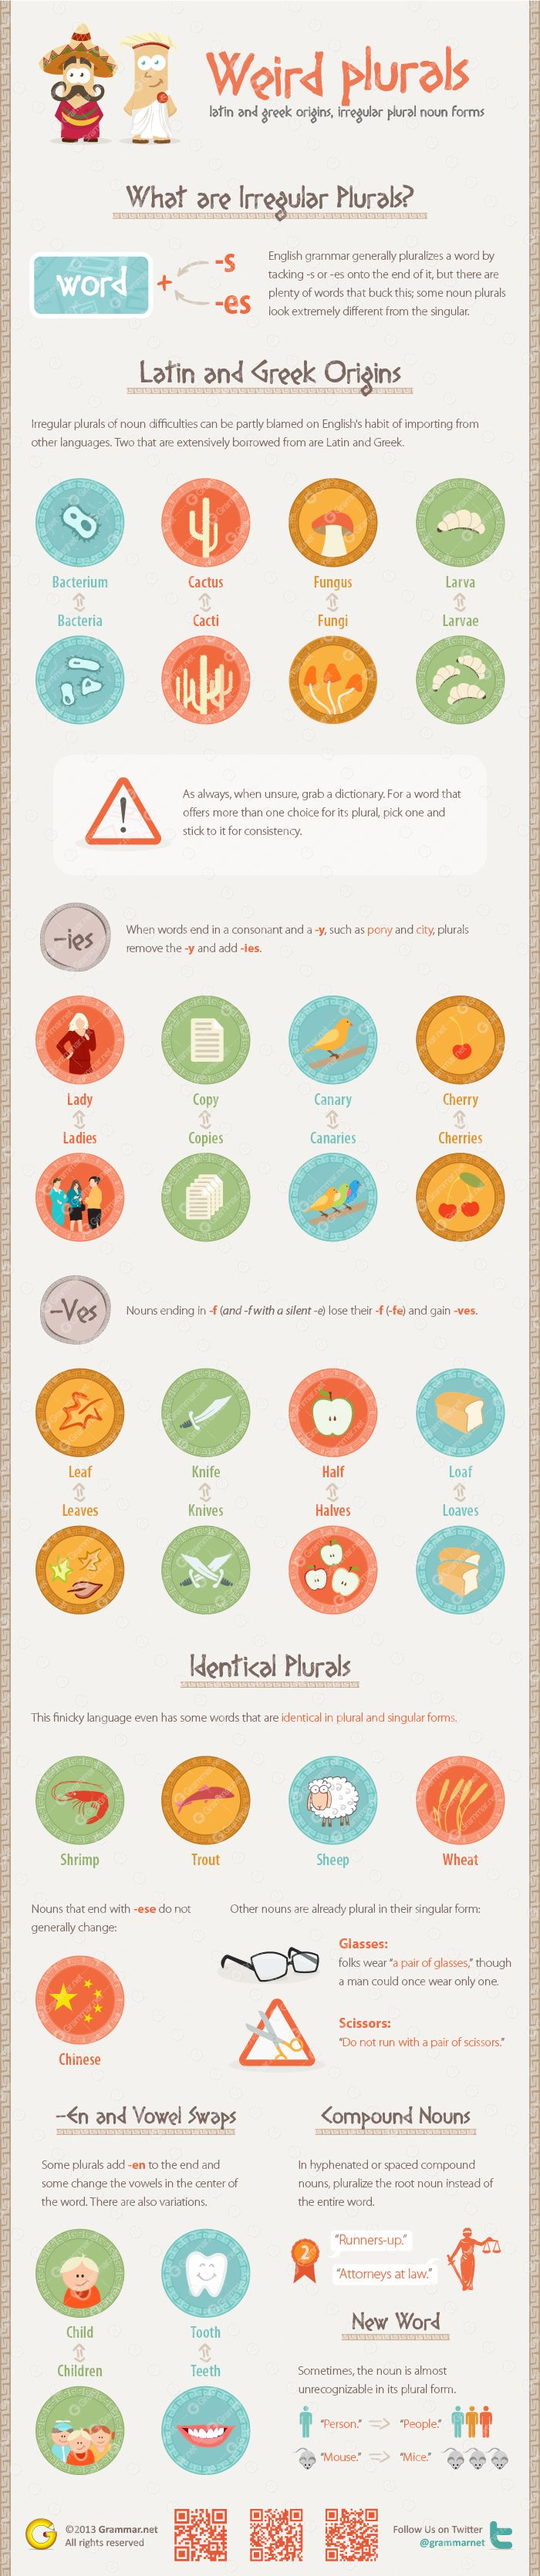 www.visualistan.com|Weird plurals: Latin and Greek origins, irregular plural noun forms, etc...This infographic could be helpful for ELLs seeking to better understand these difficult grammatical rules.